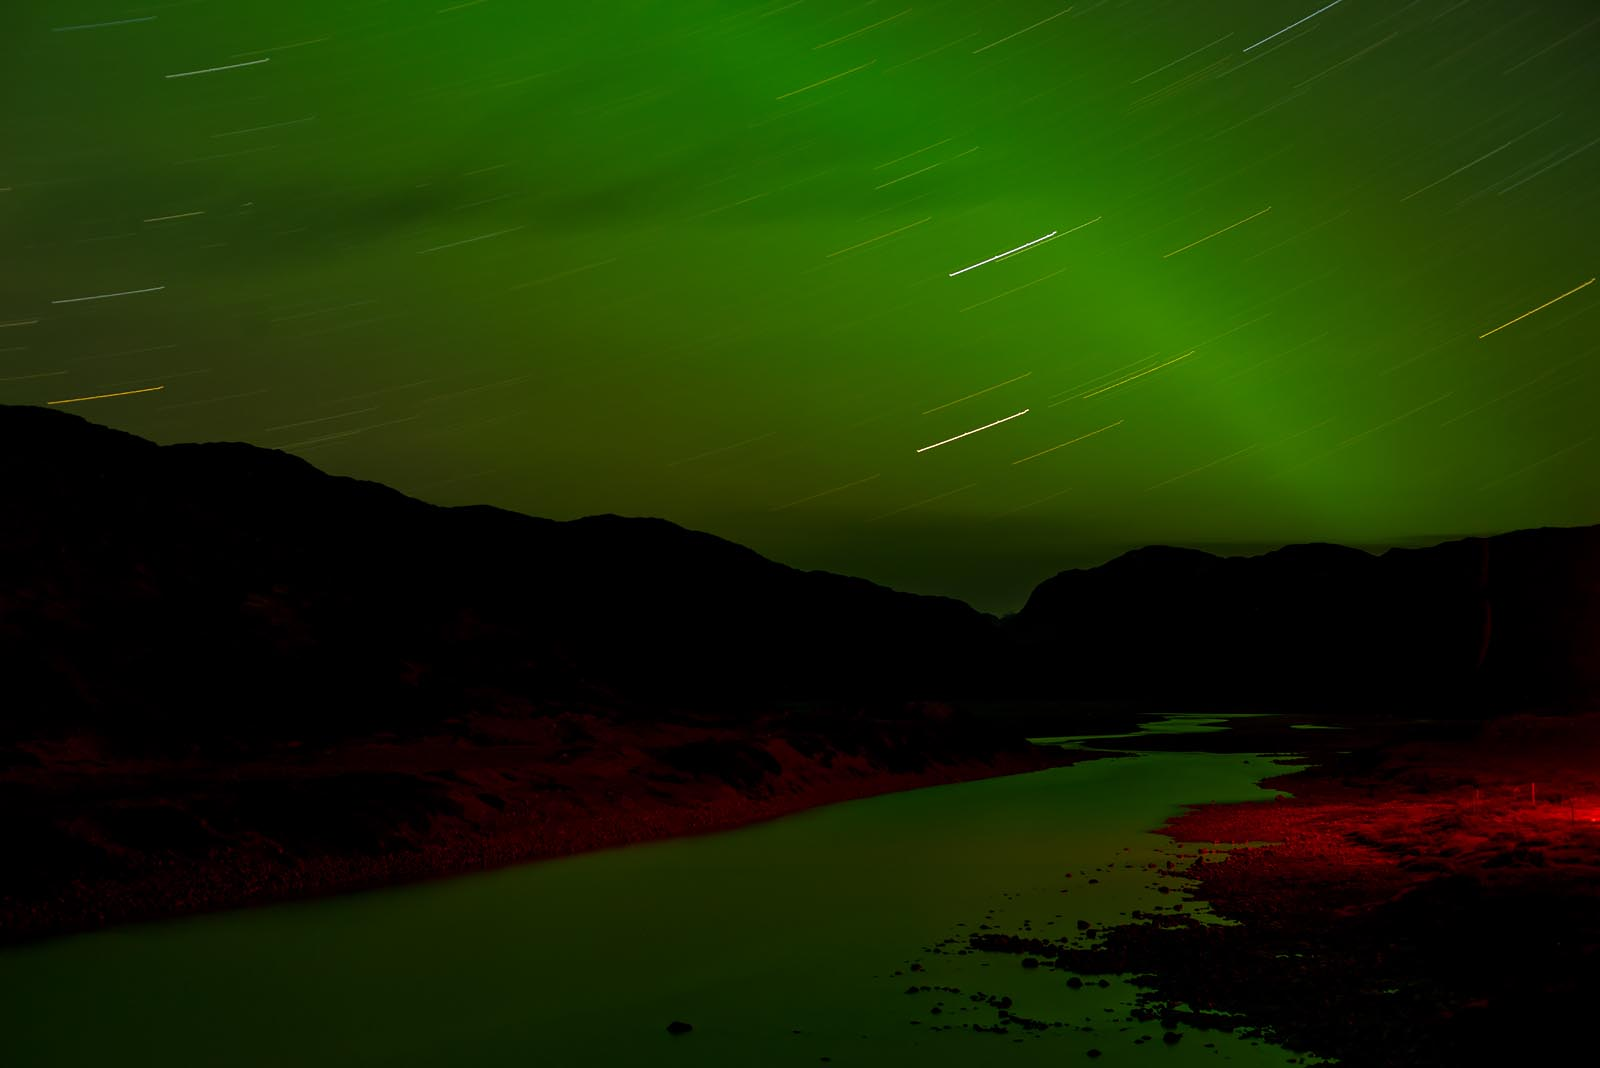 Darkland: Ethereal Greenland at Night (red and green)